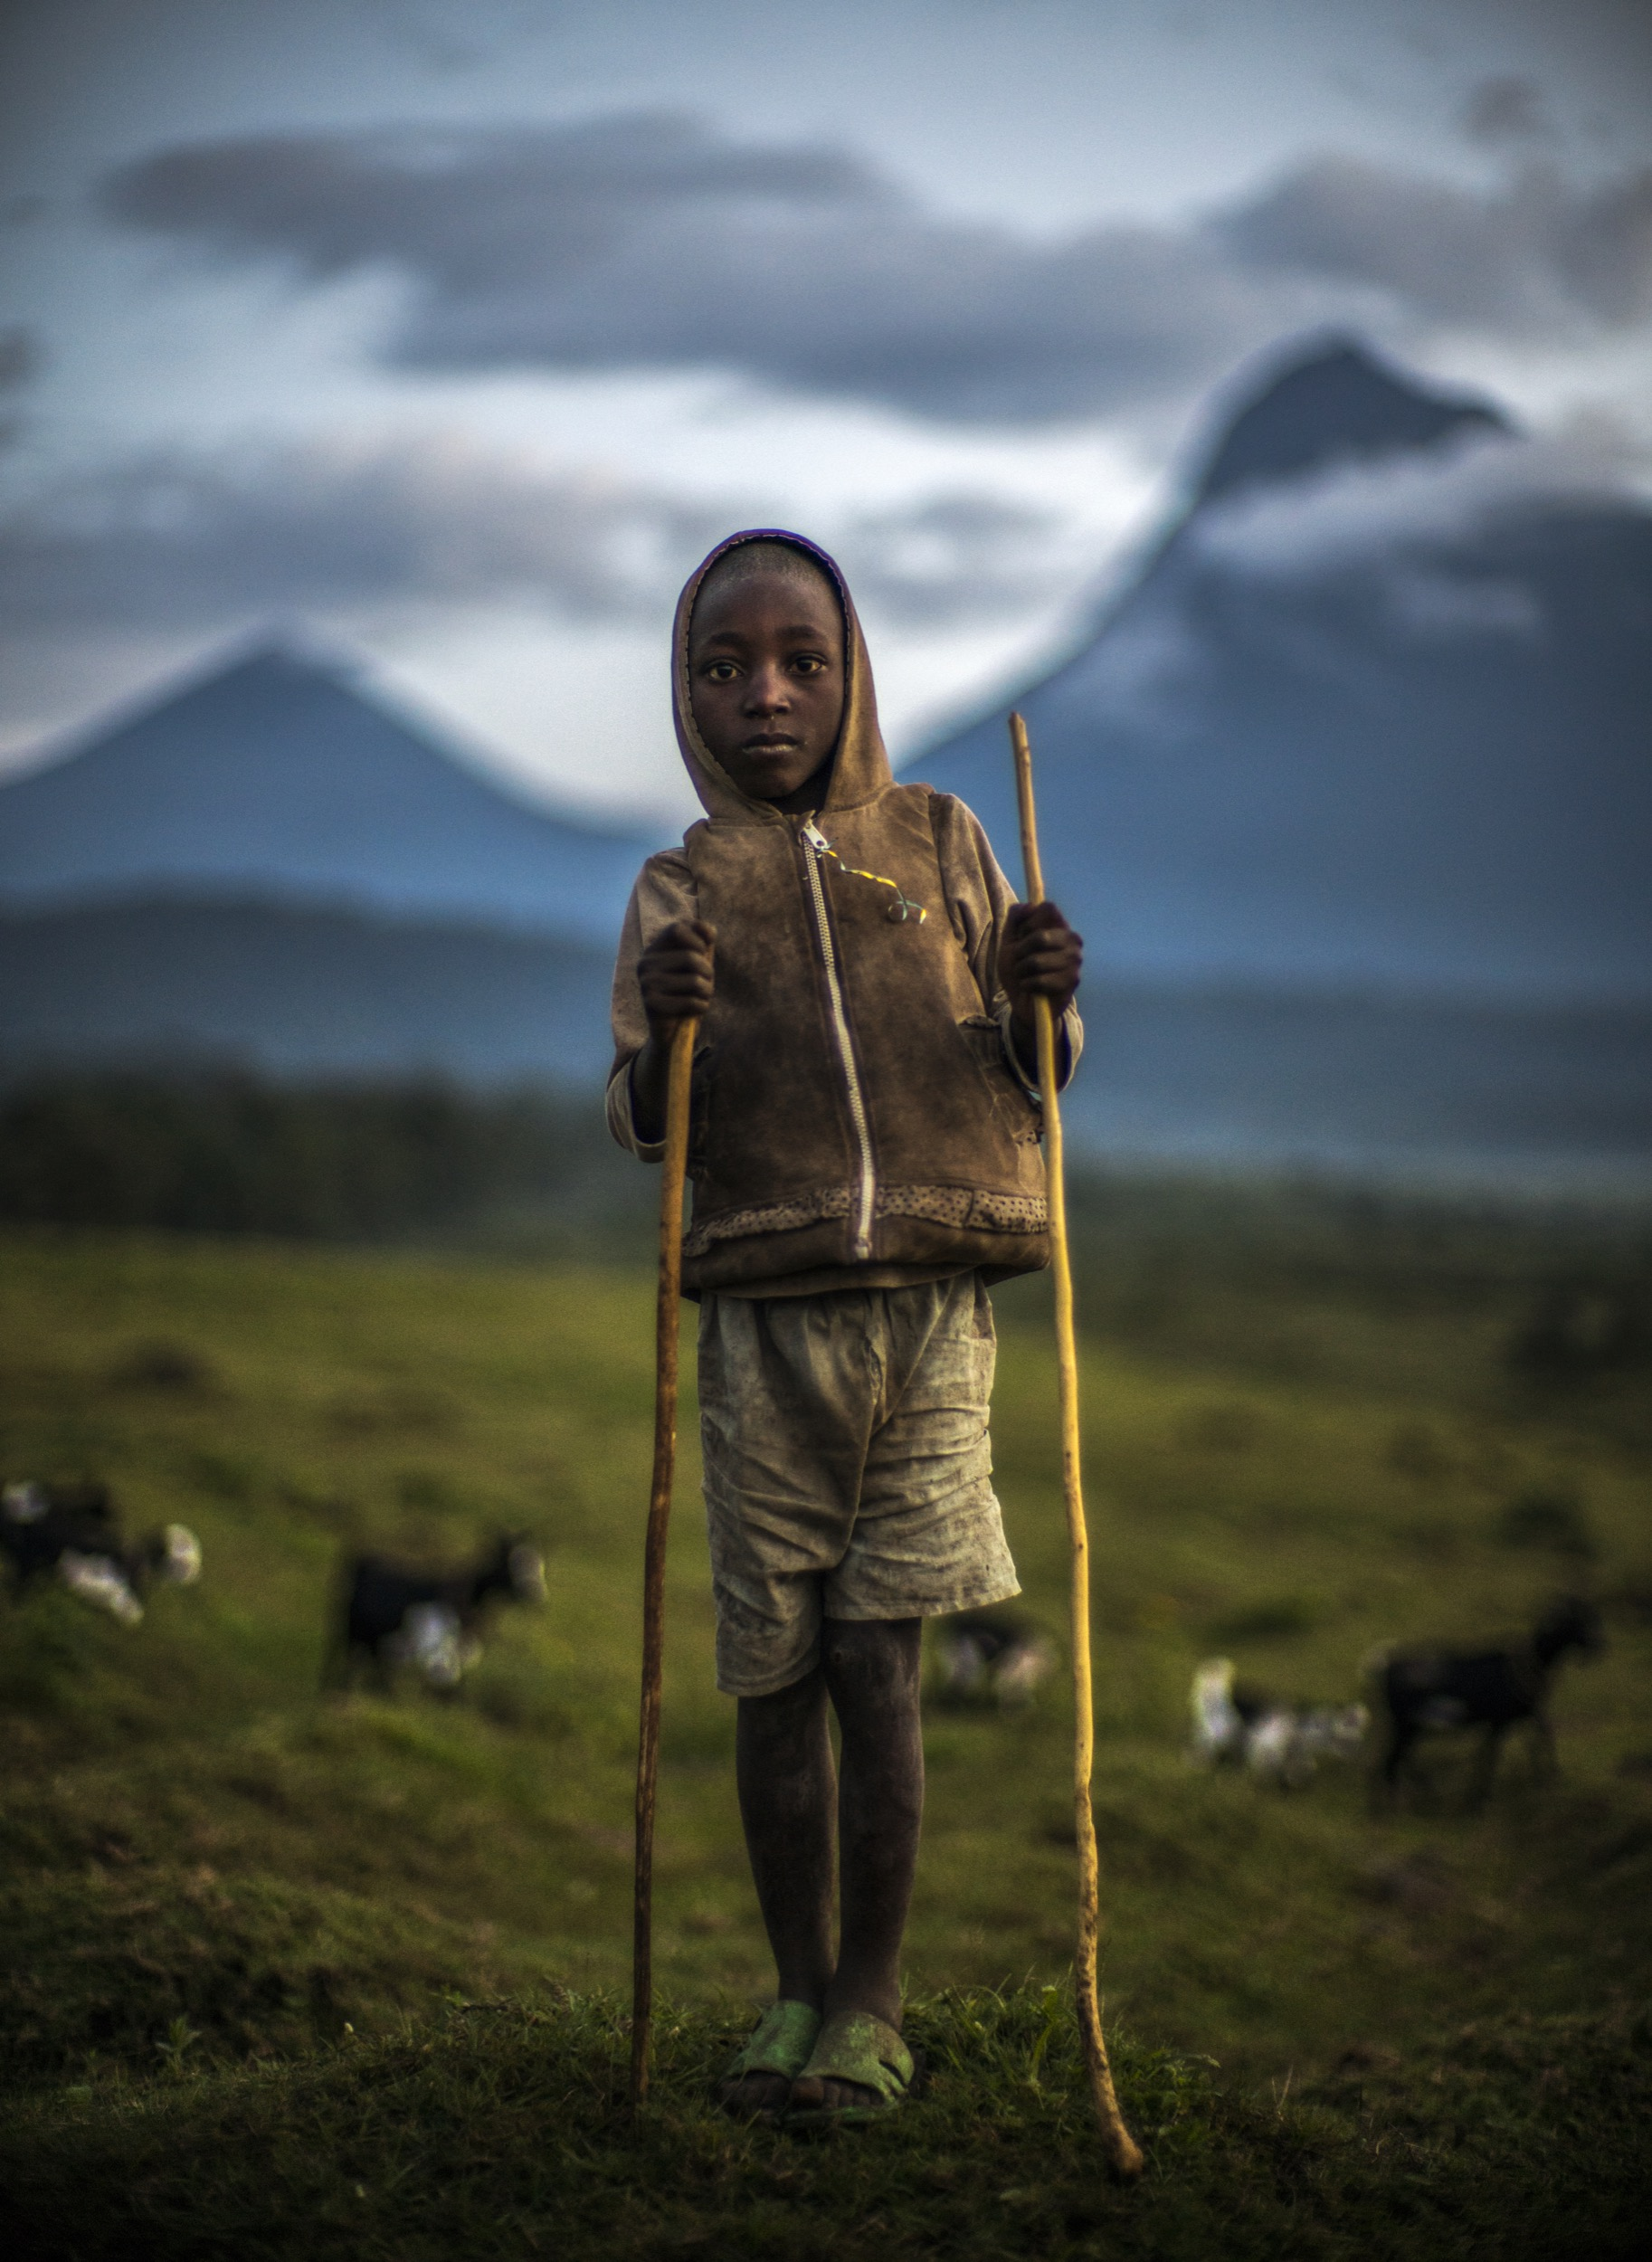 Sheepherder with Mount Mikeno. North Kivu, Democratic Republic of the Congo. 2016.